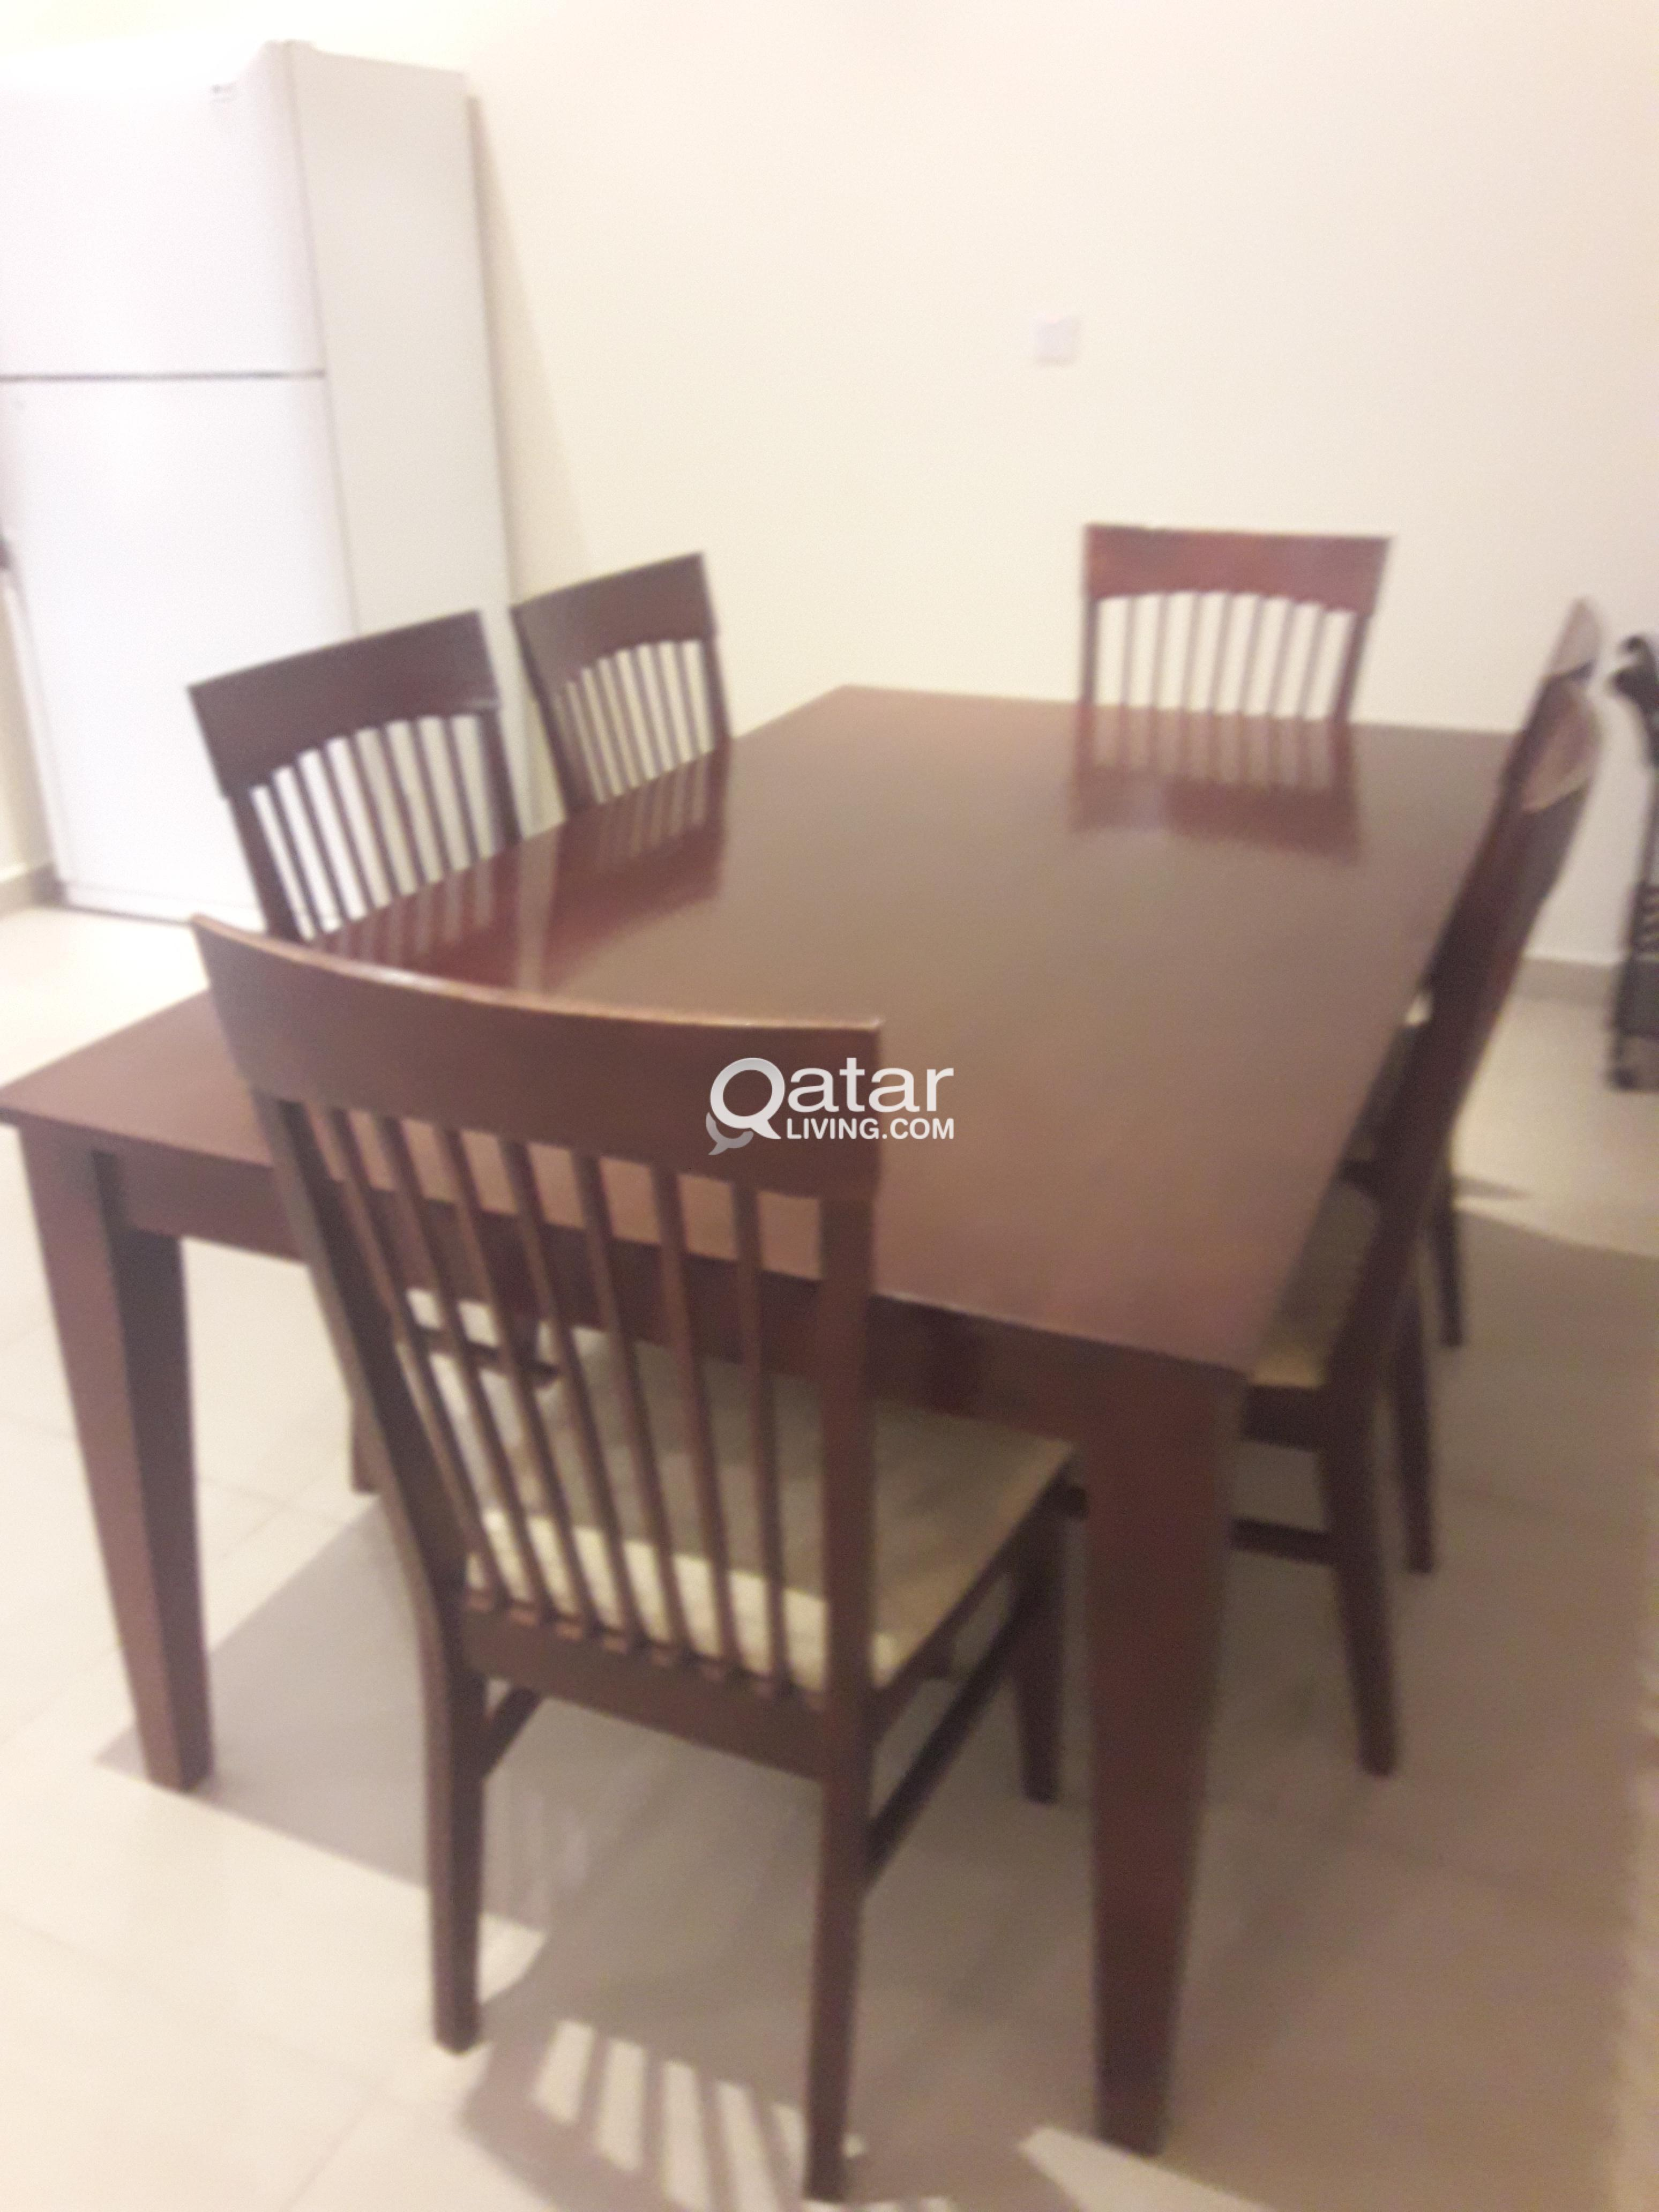 Dining table and chairs qatar living